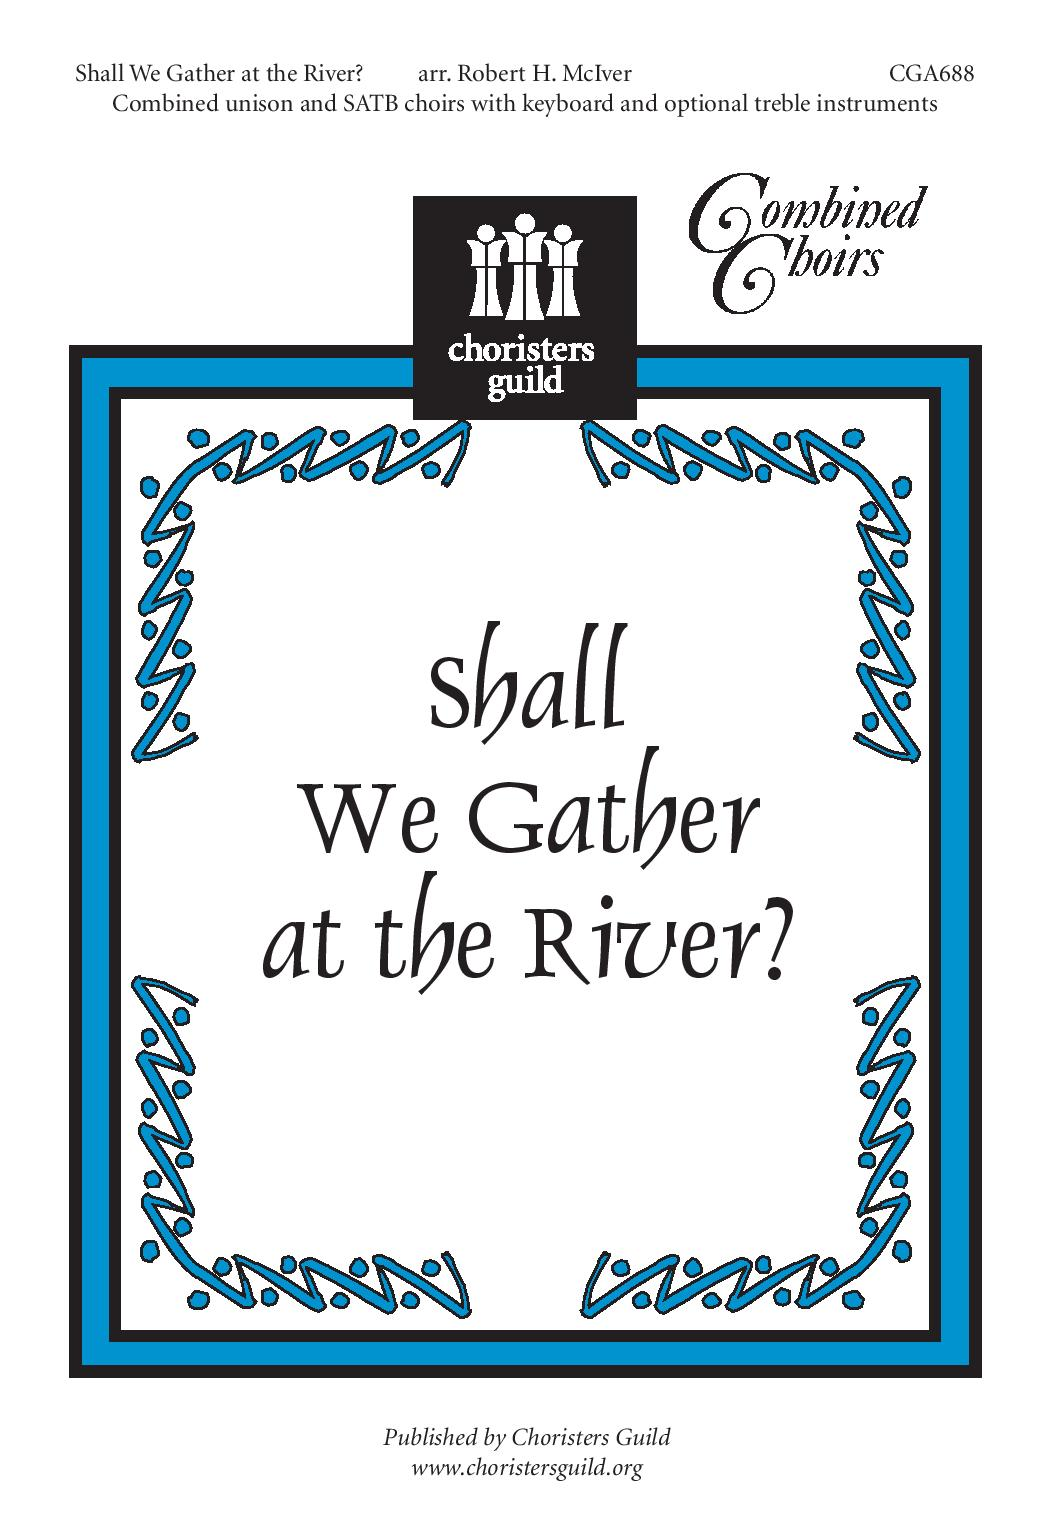 Shall We Gather at the River Unison and SATB